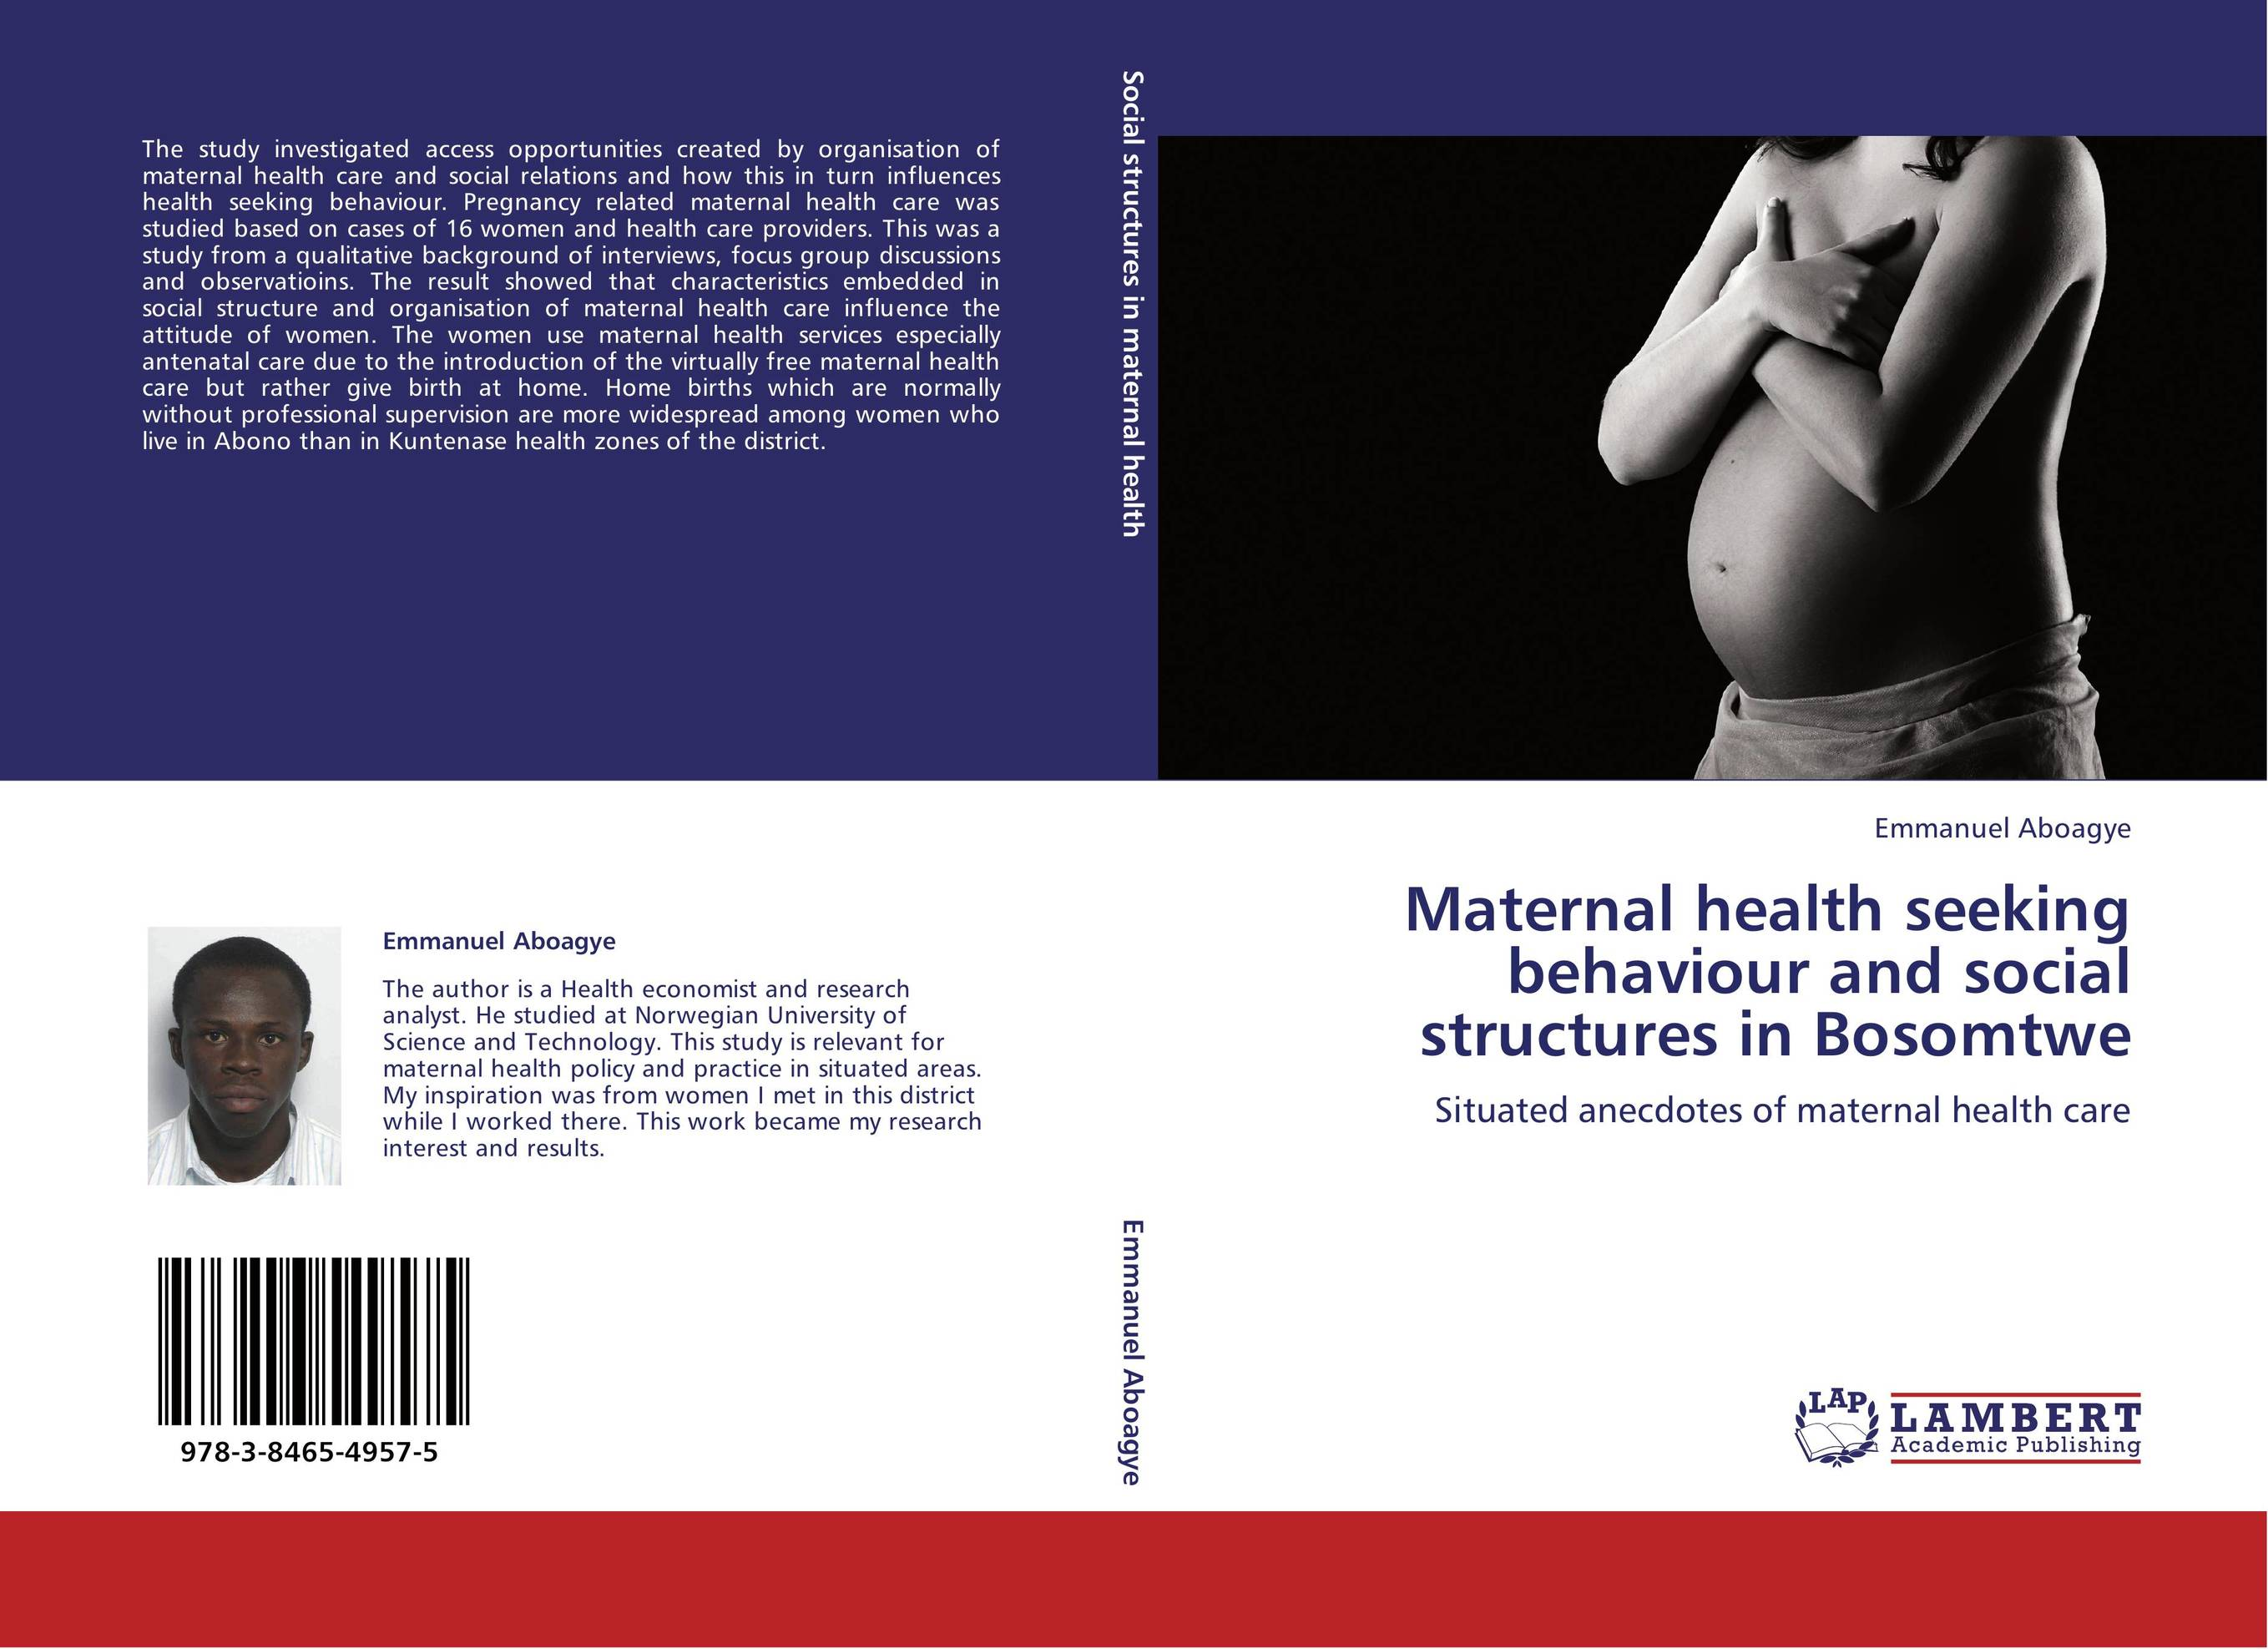 waves on pregnant women health and social care essay Pregnancy and health risks among young homeless women approximately 1% of the homeless population is comprised of unaccompanied young people who have left home (us conference of mayors, 2007), due to family problems, economic disadvantage, or residential instability (duffield, 2001.